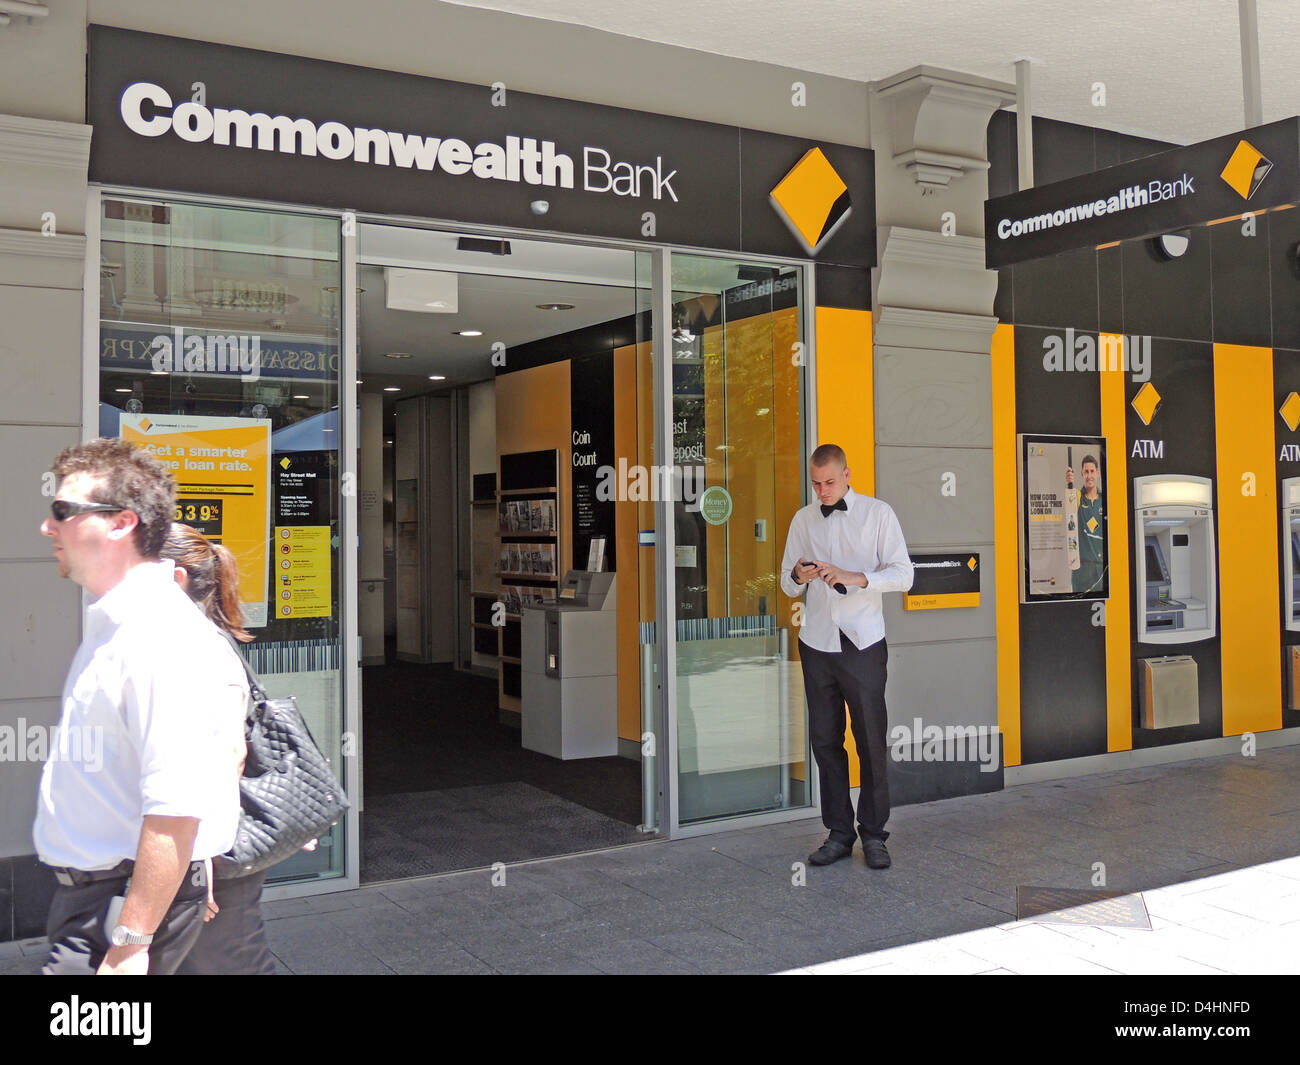 Enter an address, BSB,  You will find their location, services,  Find a Commonwealth bank branch, ATM